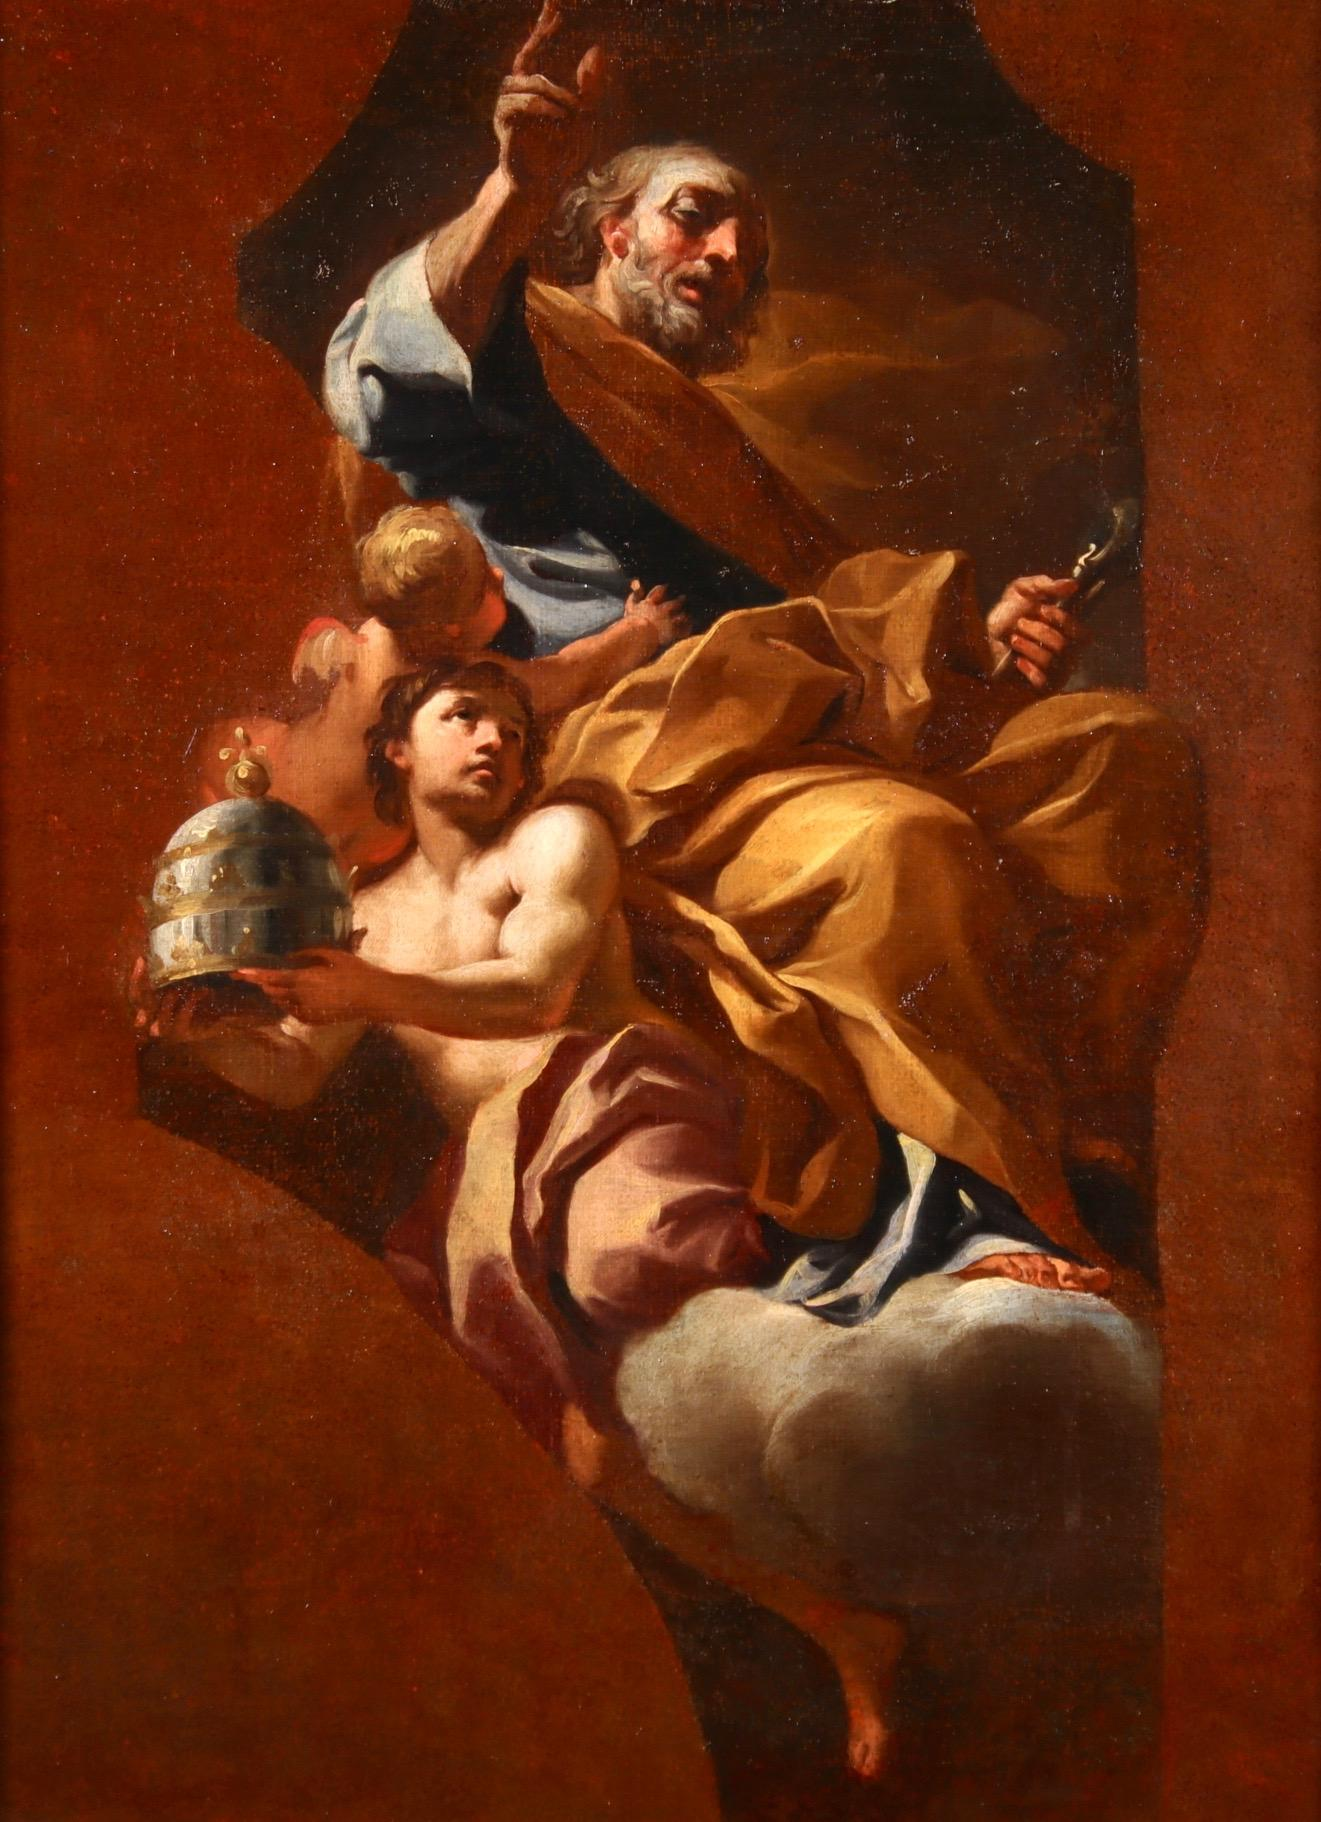 Saint Peter & The Angels - 17th Century Oil, Religious Figures by F Solimena